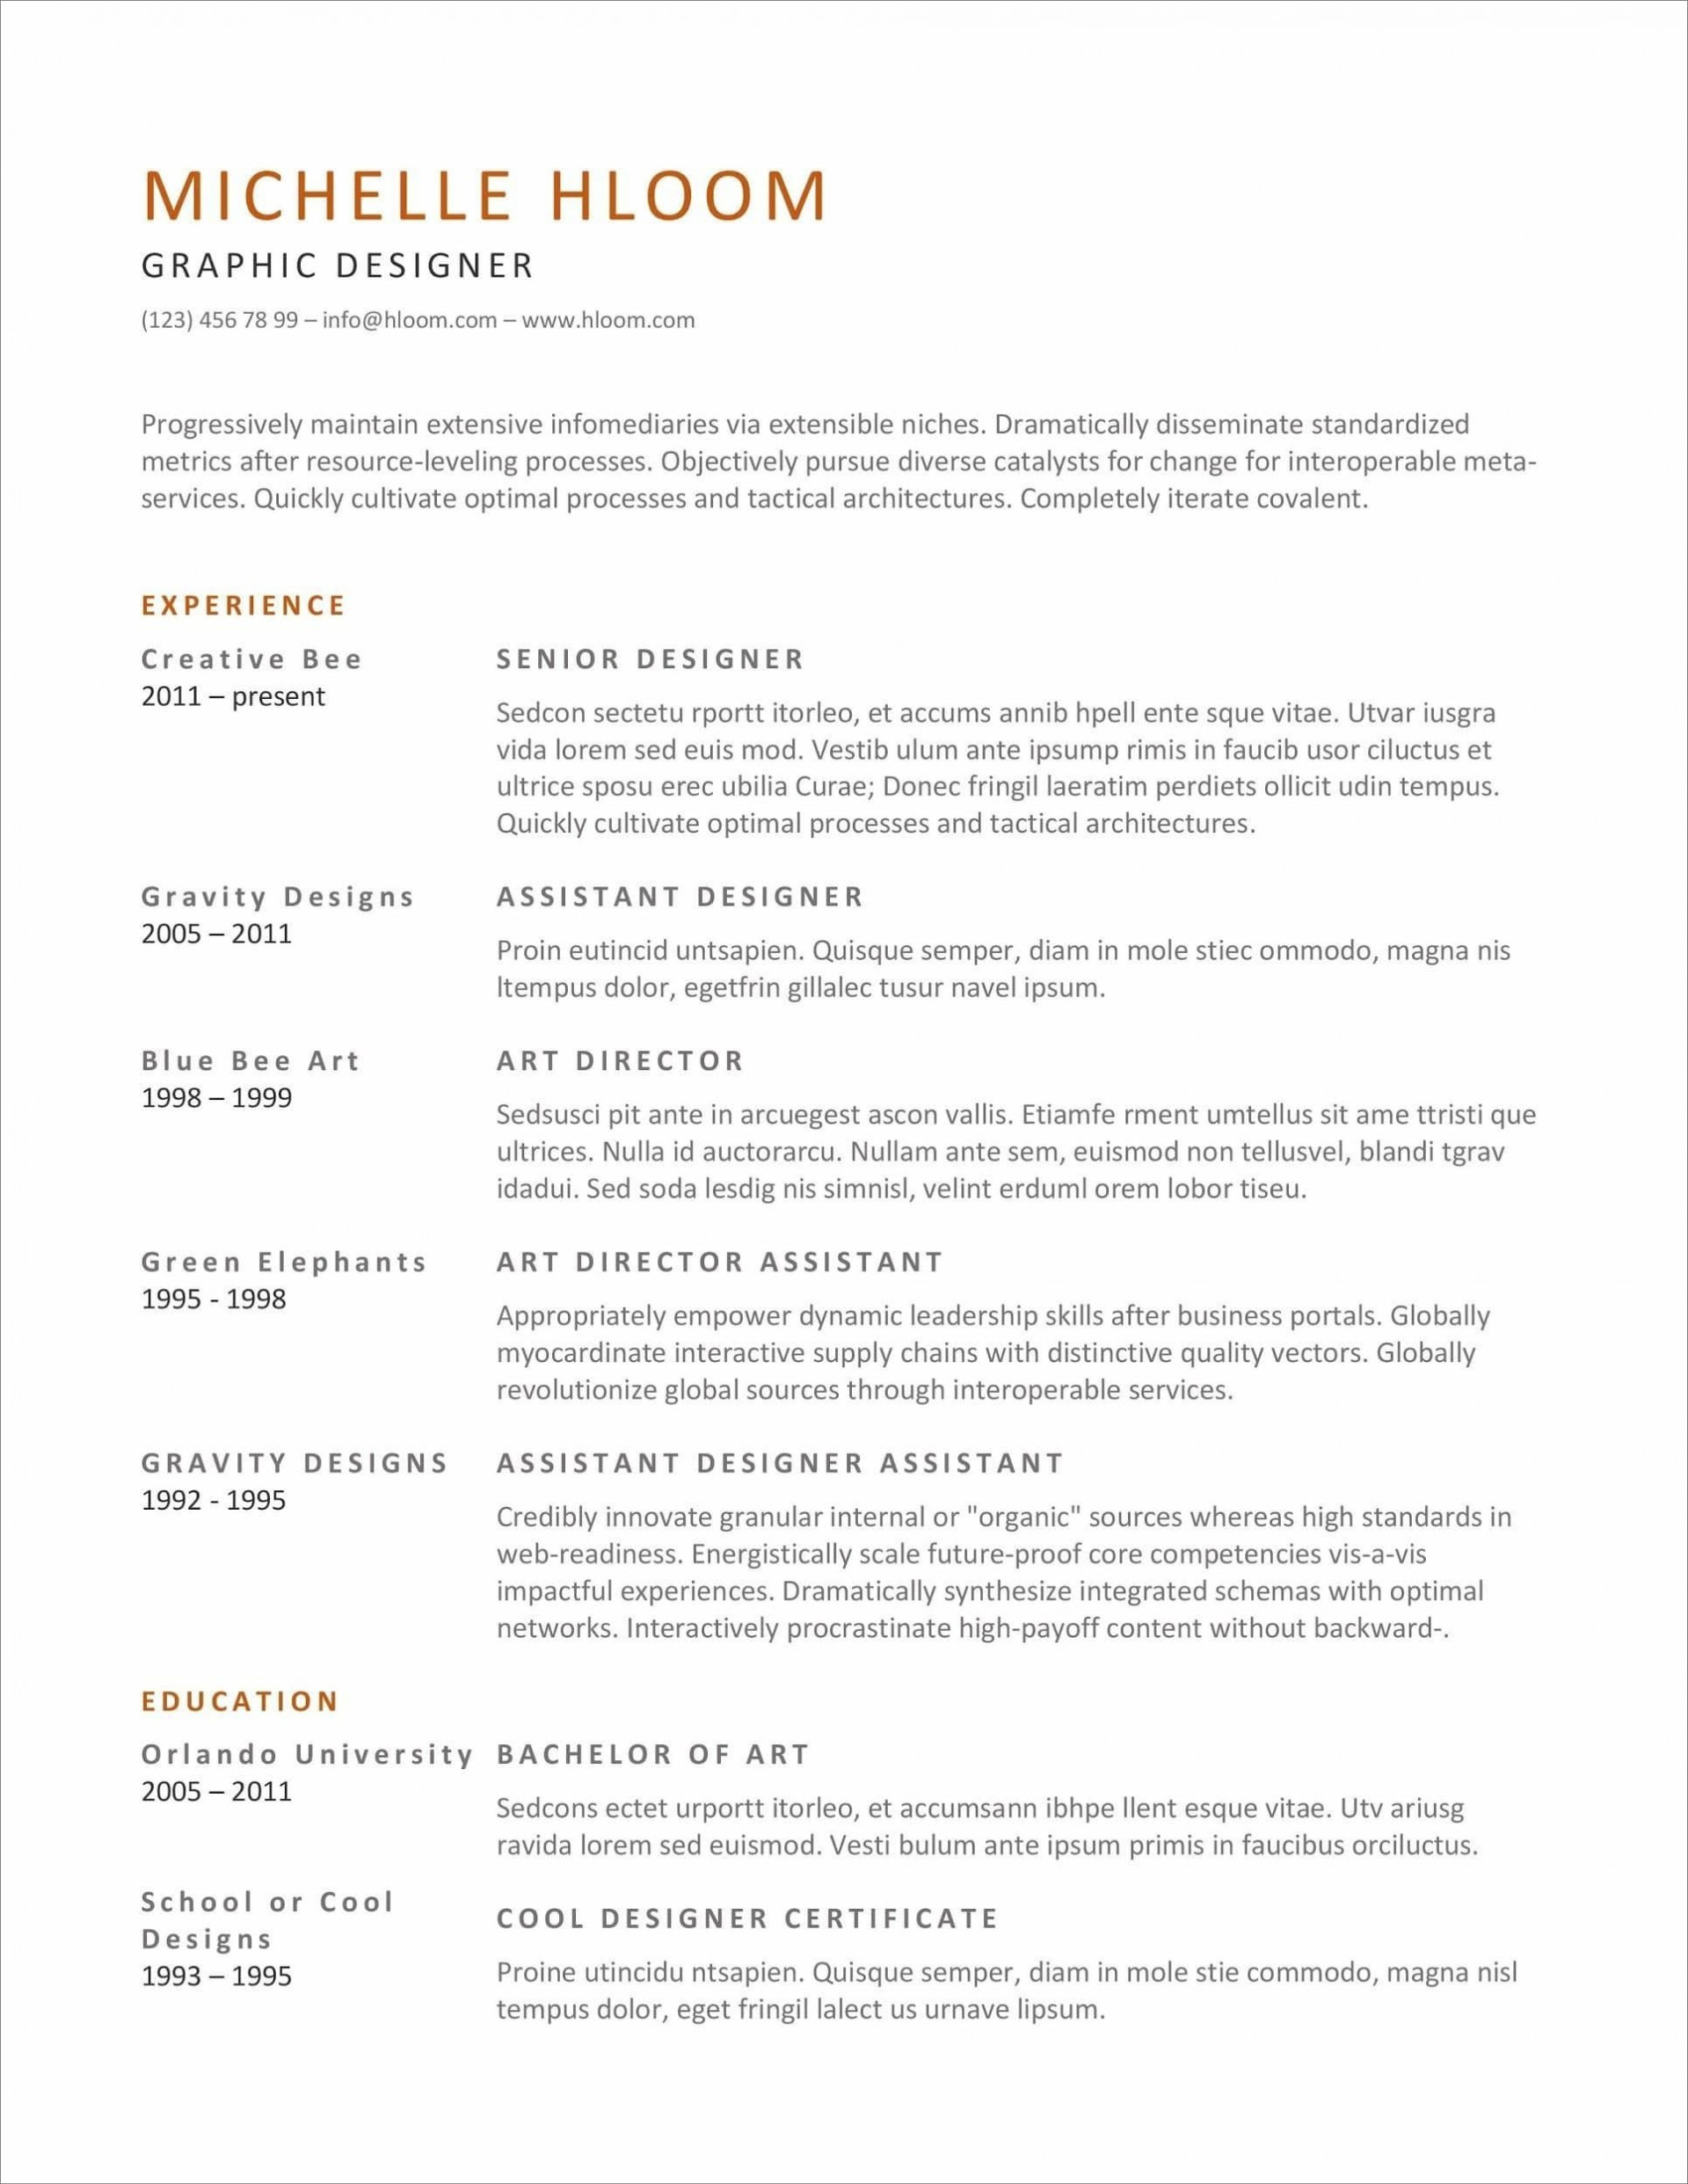 M Word Template Resume Idea  Ms Design Microsoft Office Free Download1920